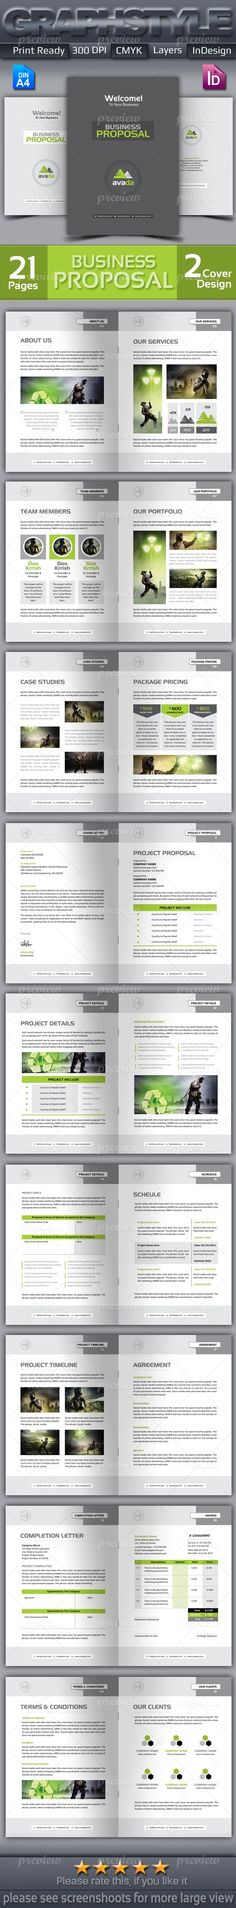 Full Proposal Template  Office Word Version  Newsletter